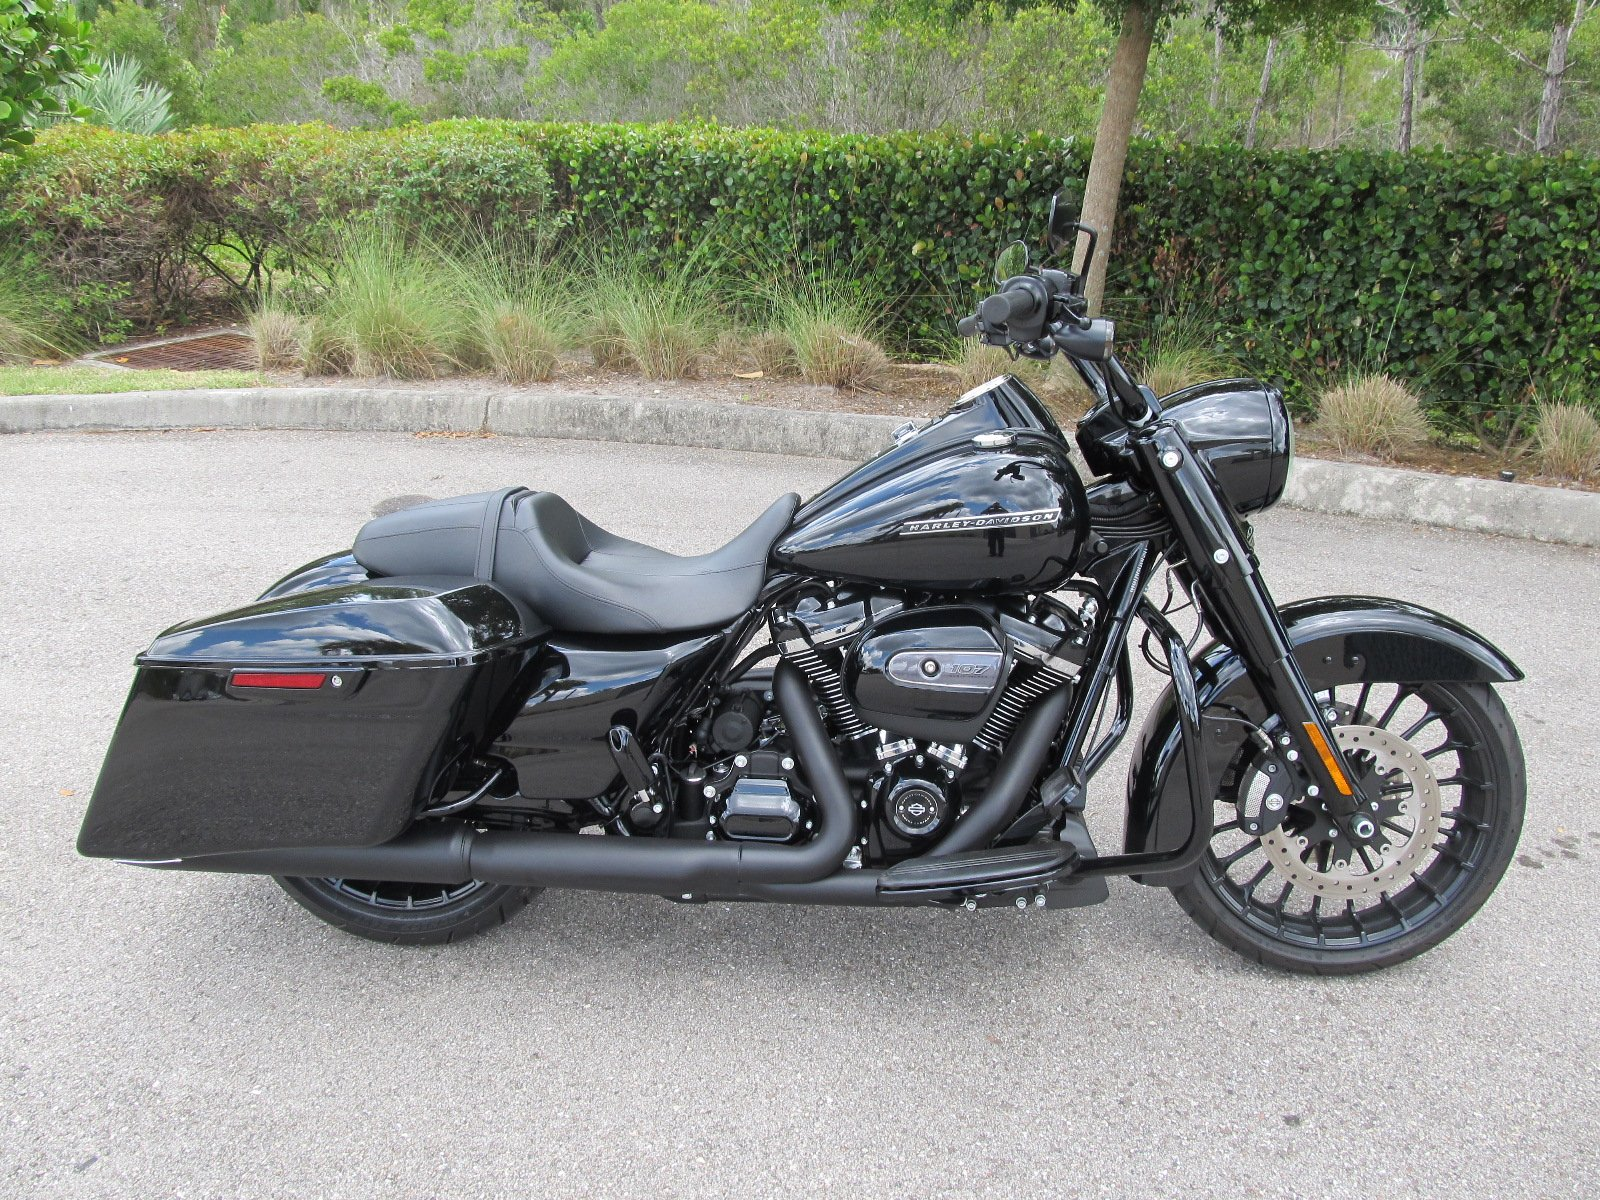 Pre-Owned 2018 Harley-Davidson Road King Special FLHRXS